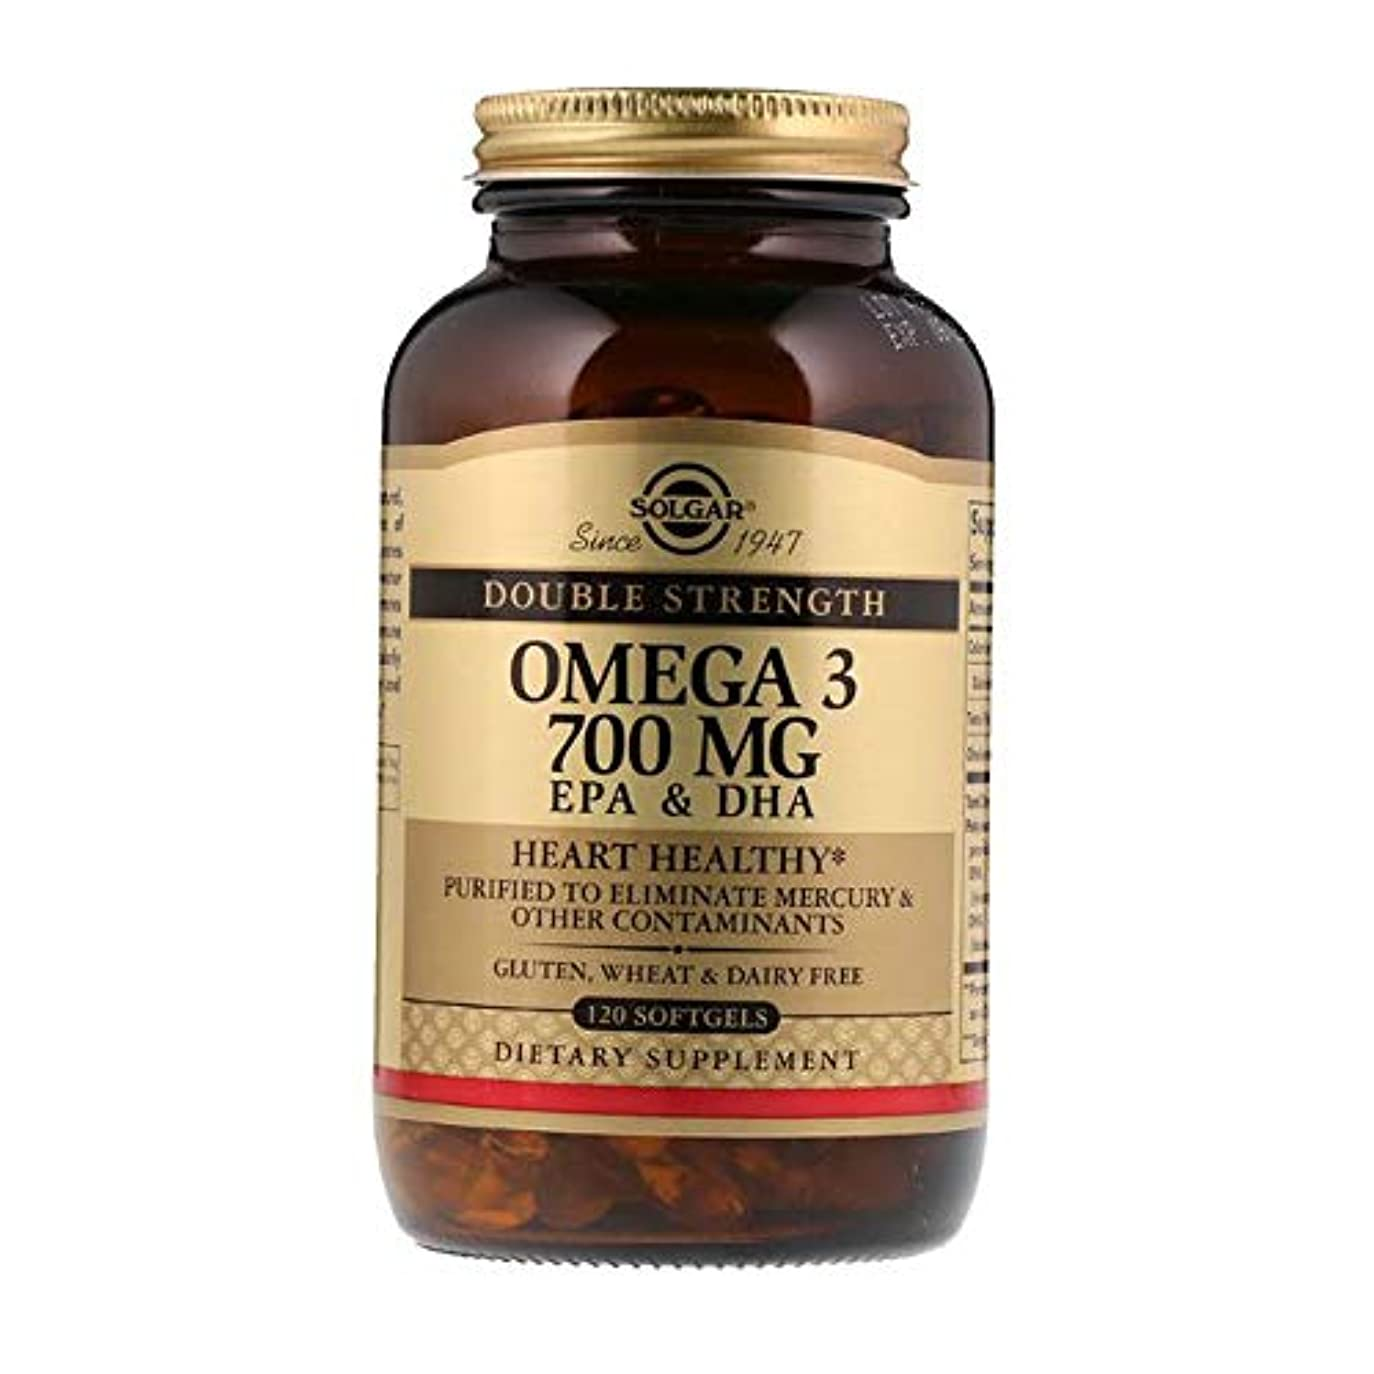 劇場ウェブほめるSolgar Omega 3 EPA DHA Double Strength 700mg 120 Softgels 【アメリカ直送】